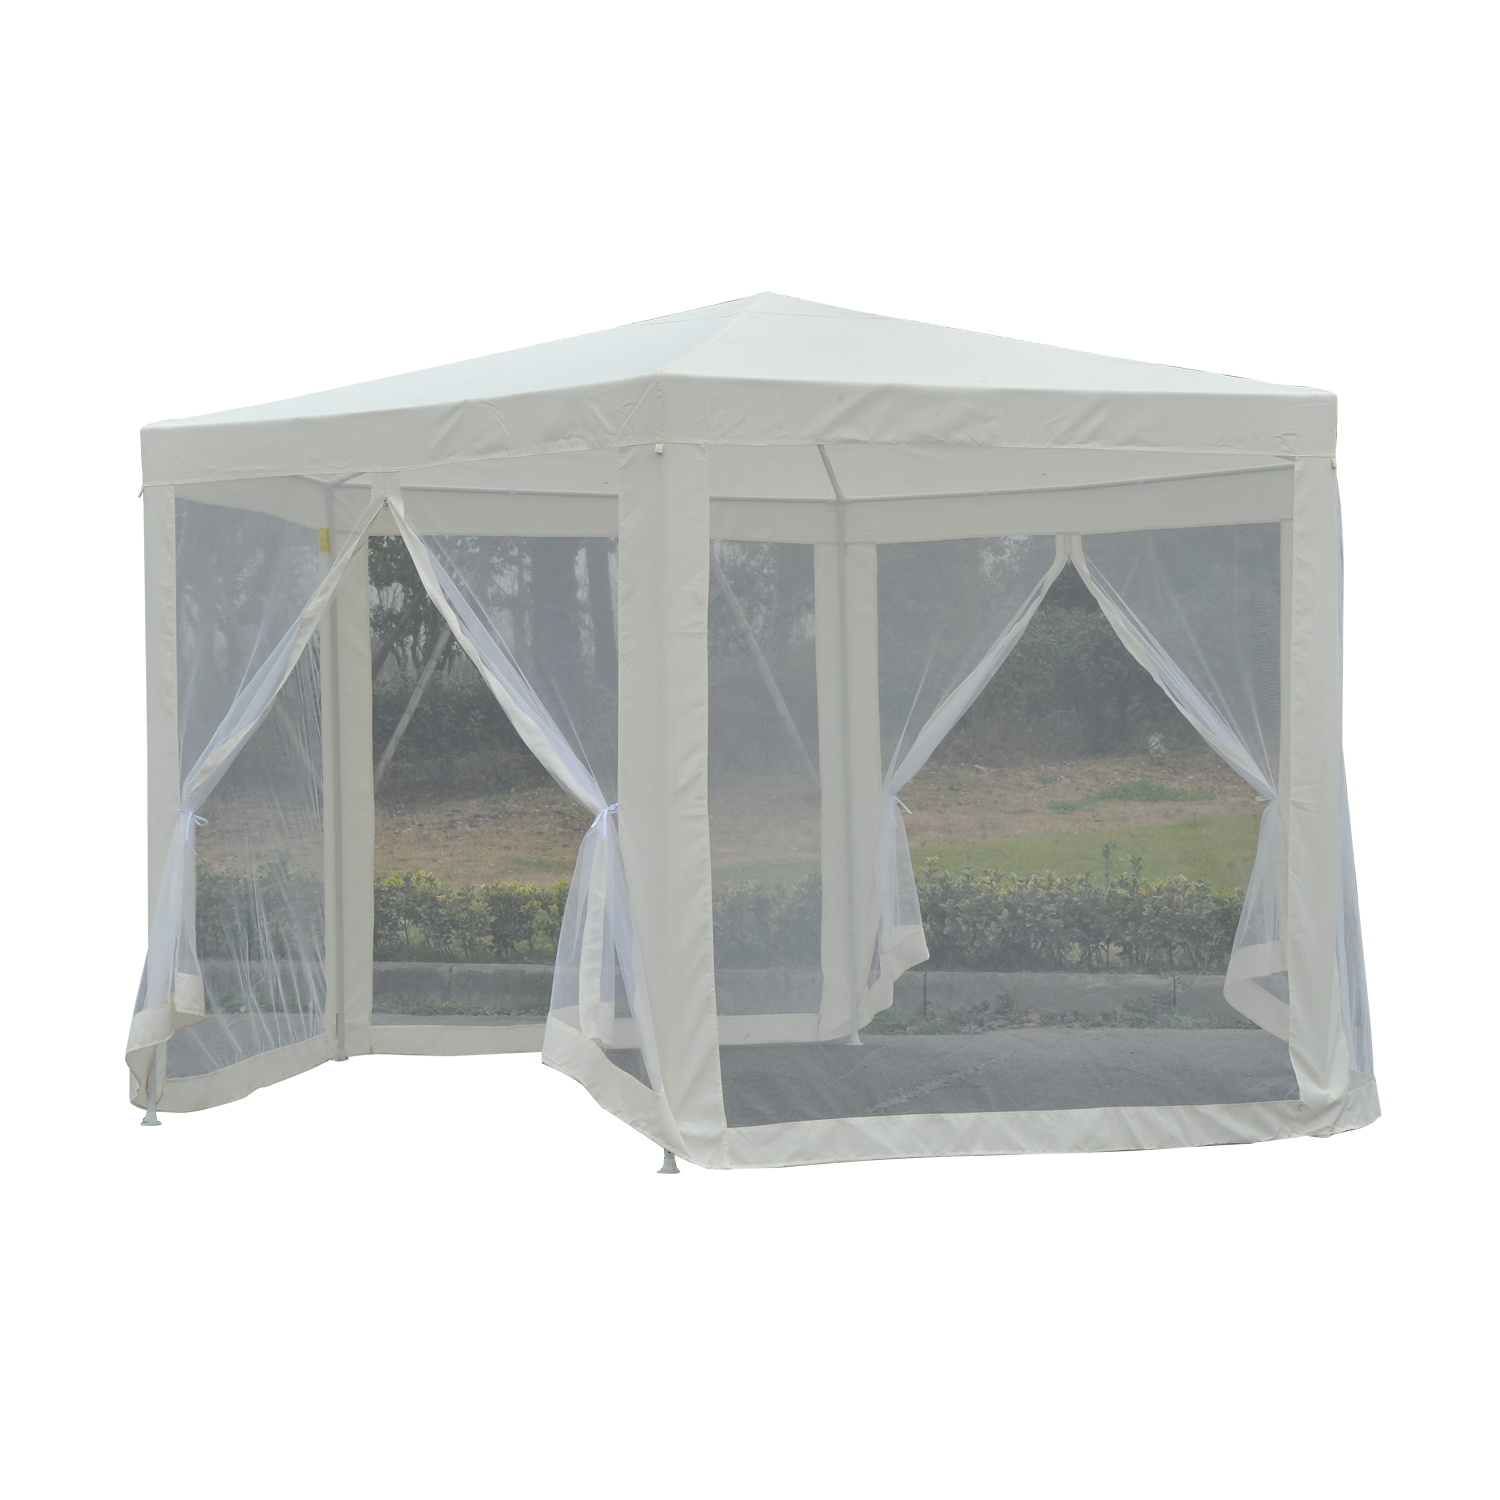 Outsunny Outdoor Hexagon Party Gazebo Tent Canopy Cover with Mesh Side Walls Cream White